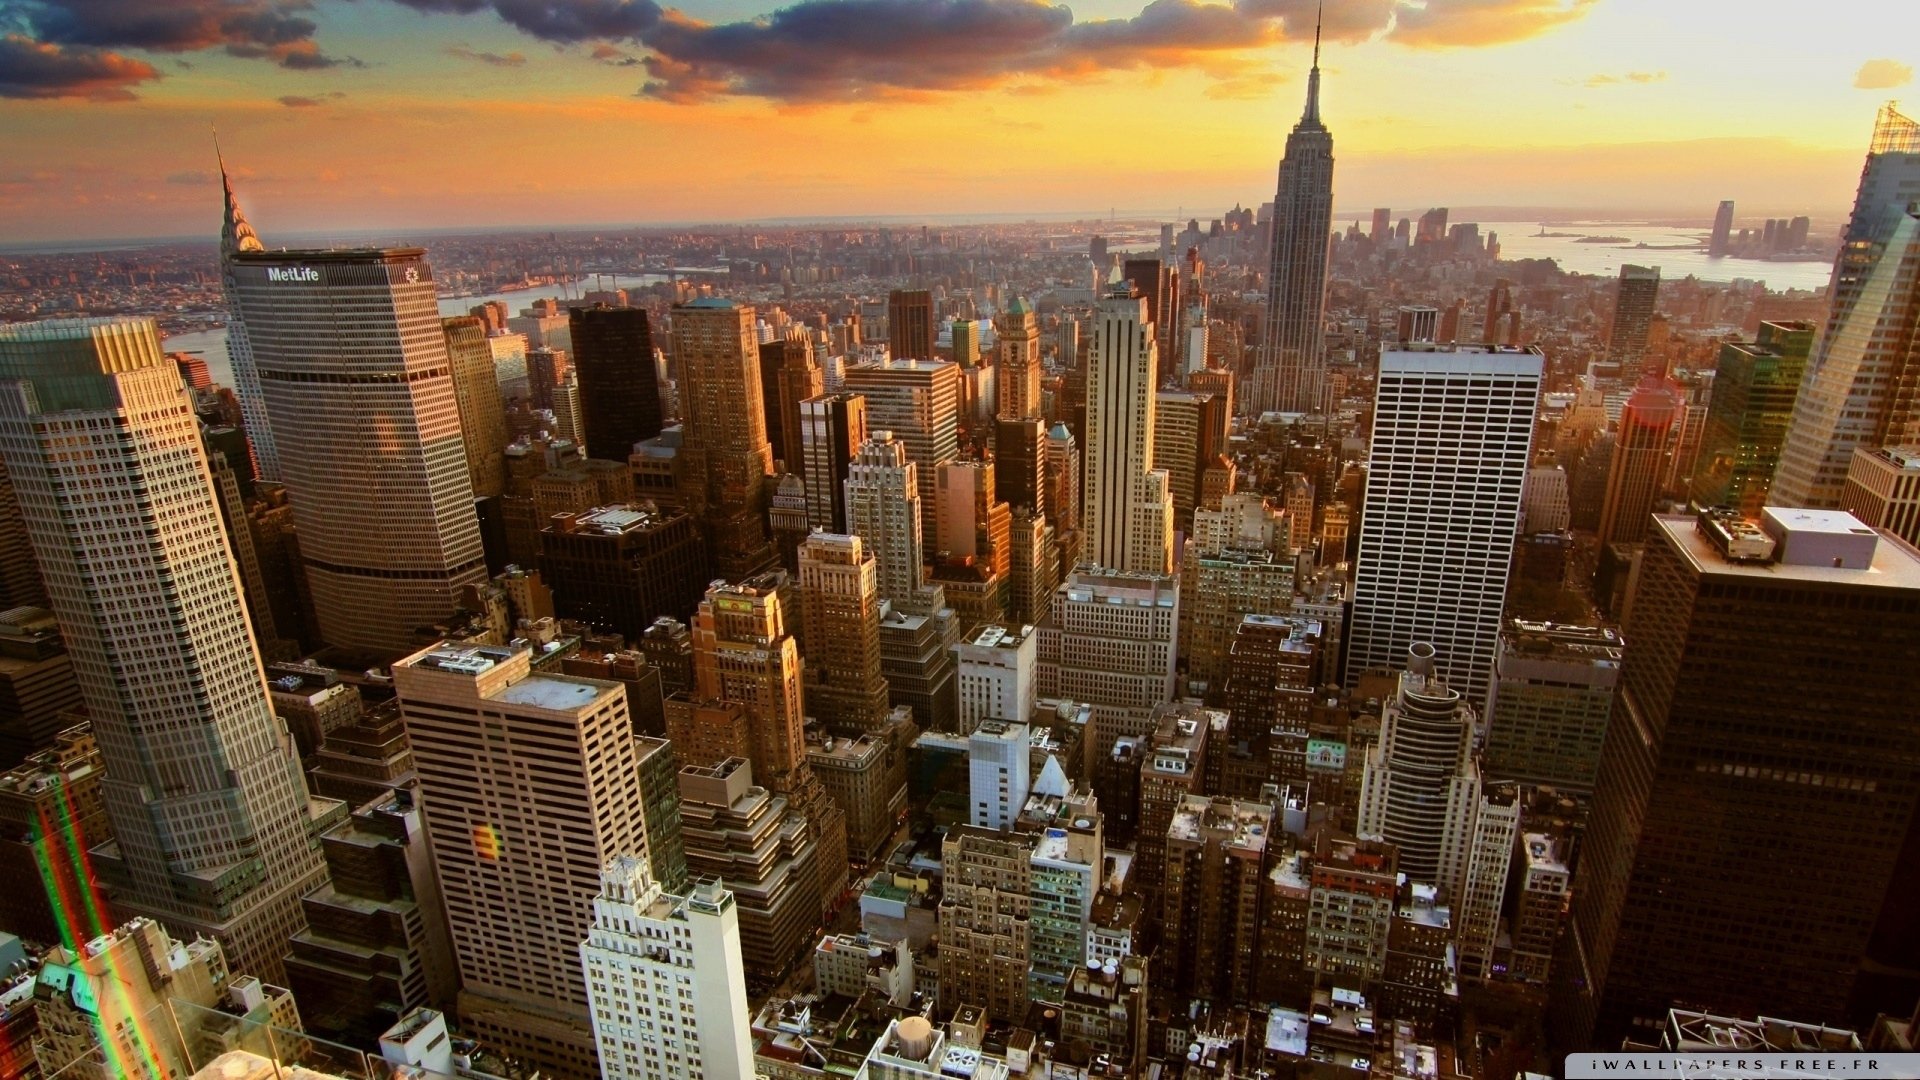 aerial view of new york city-wallpaper-1920x1080 - 10 000 fonds d